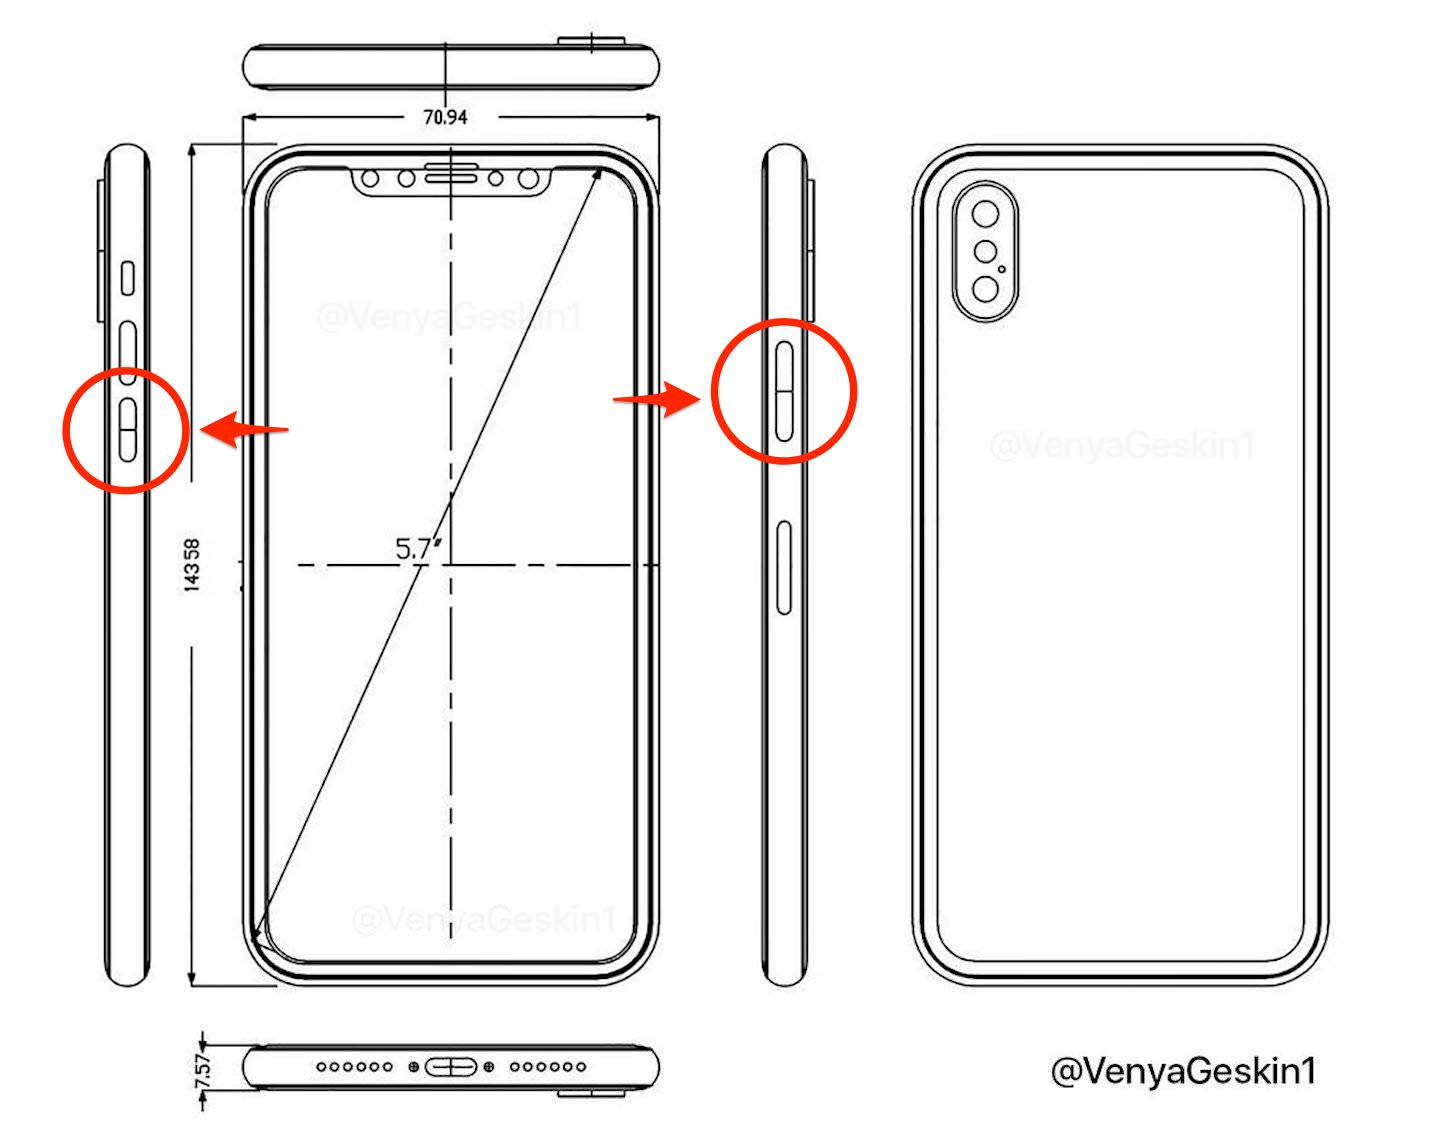 New Schematics for iPhone8